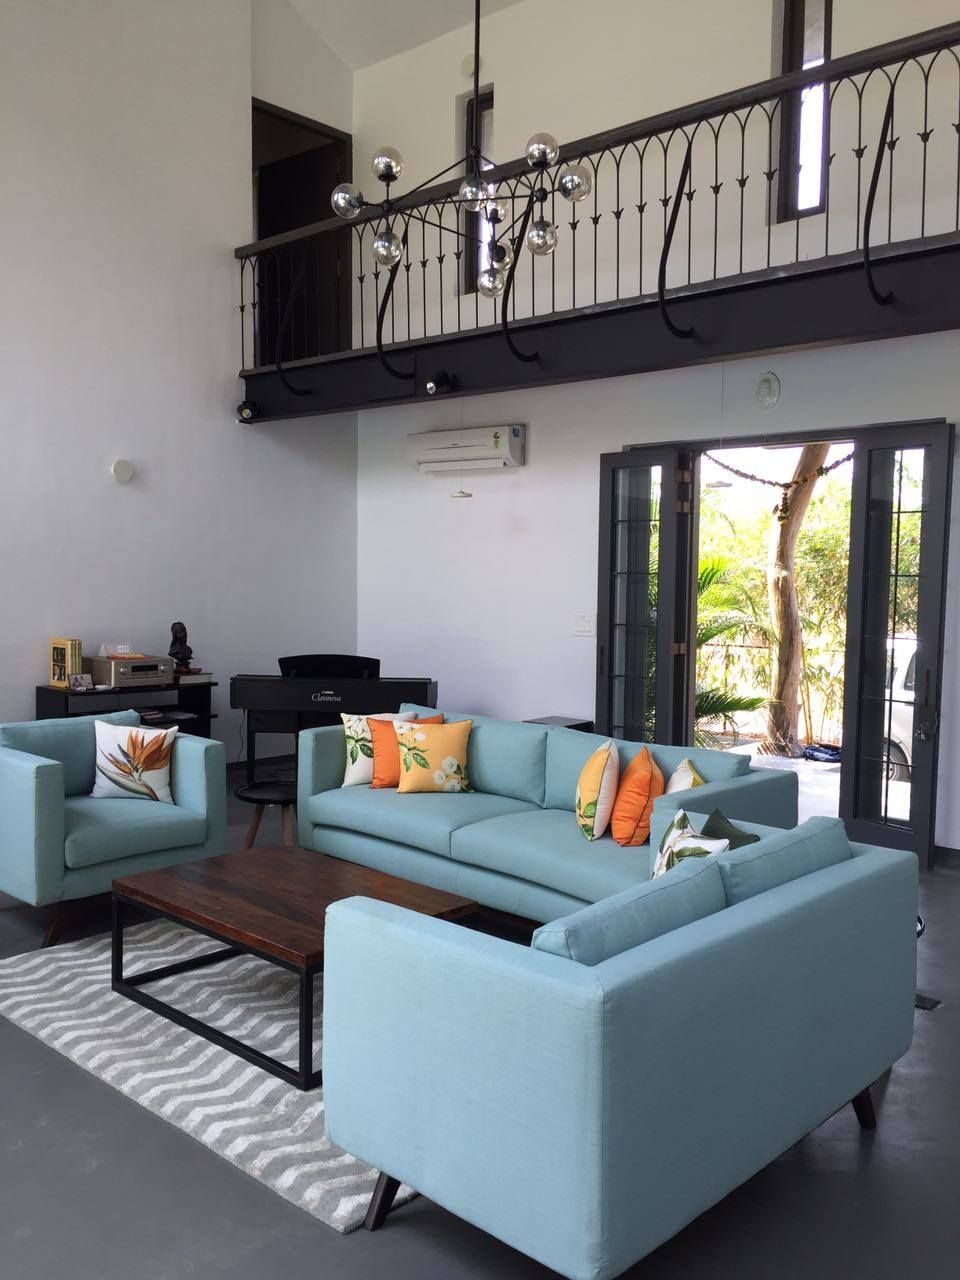 A refreshing colour scheme high ceiling and patio doors make this